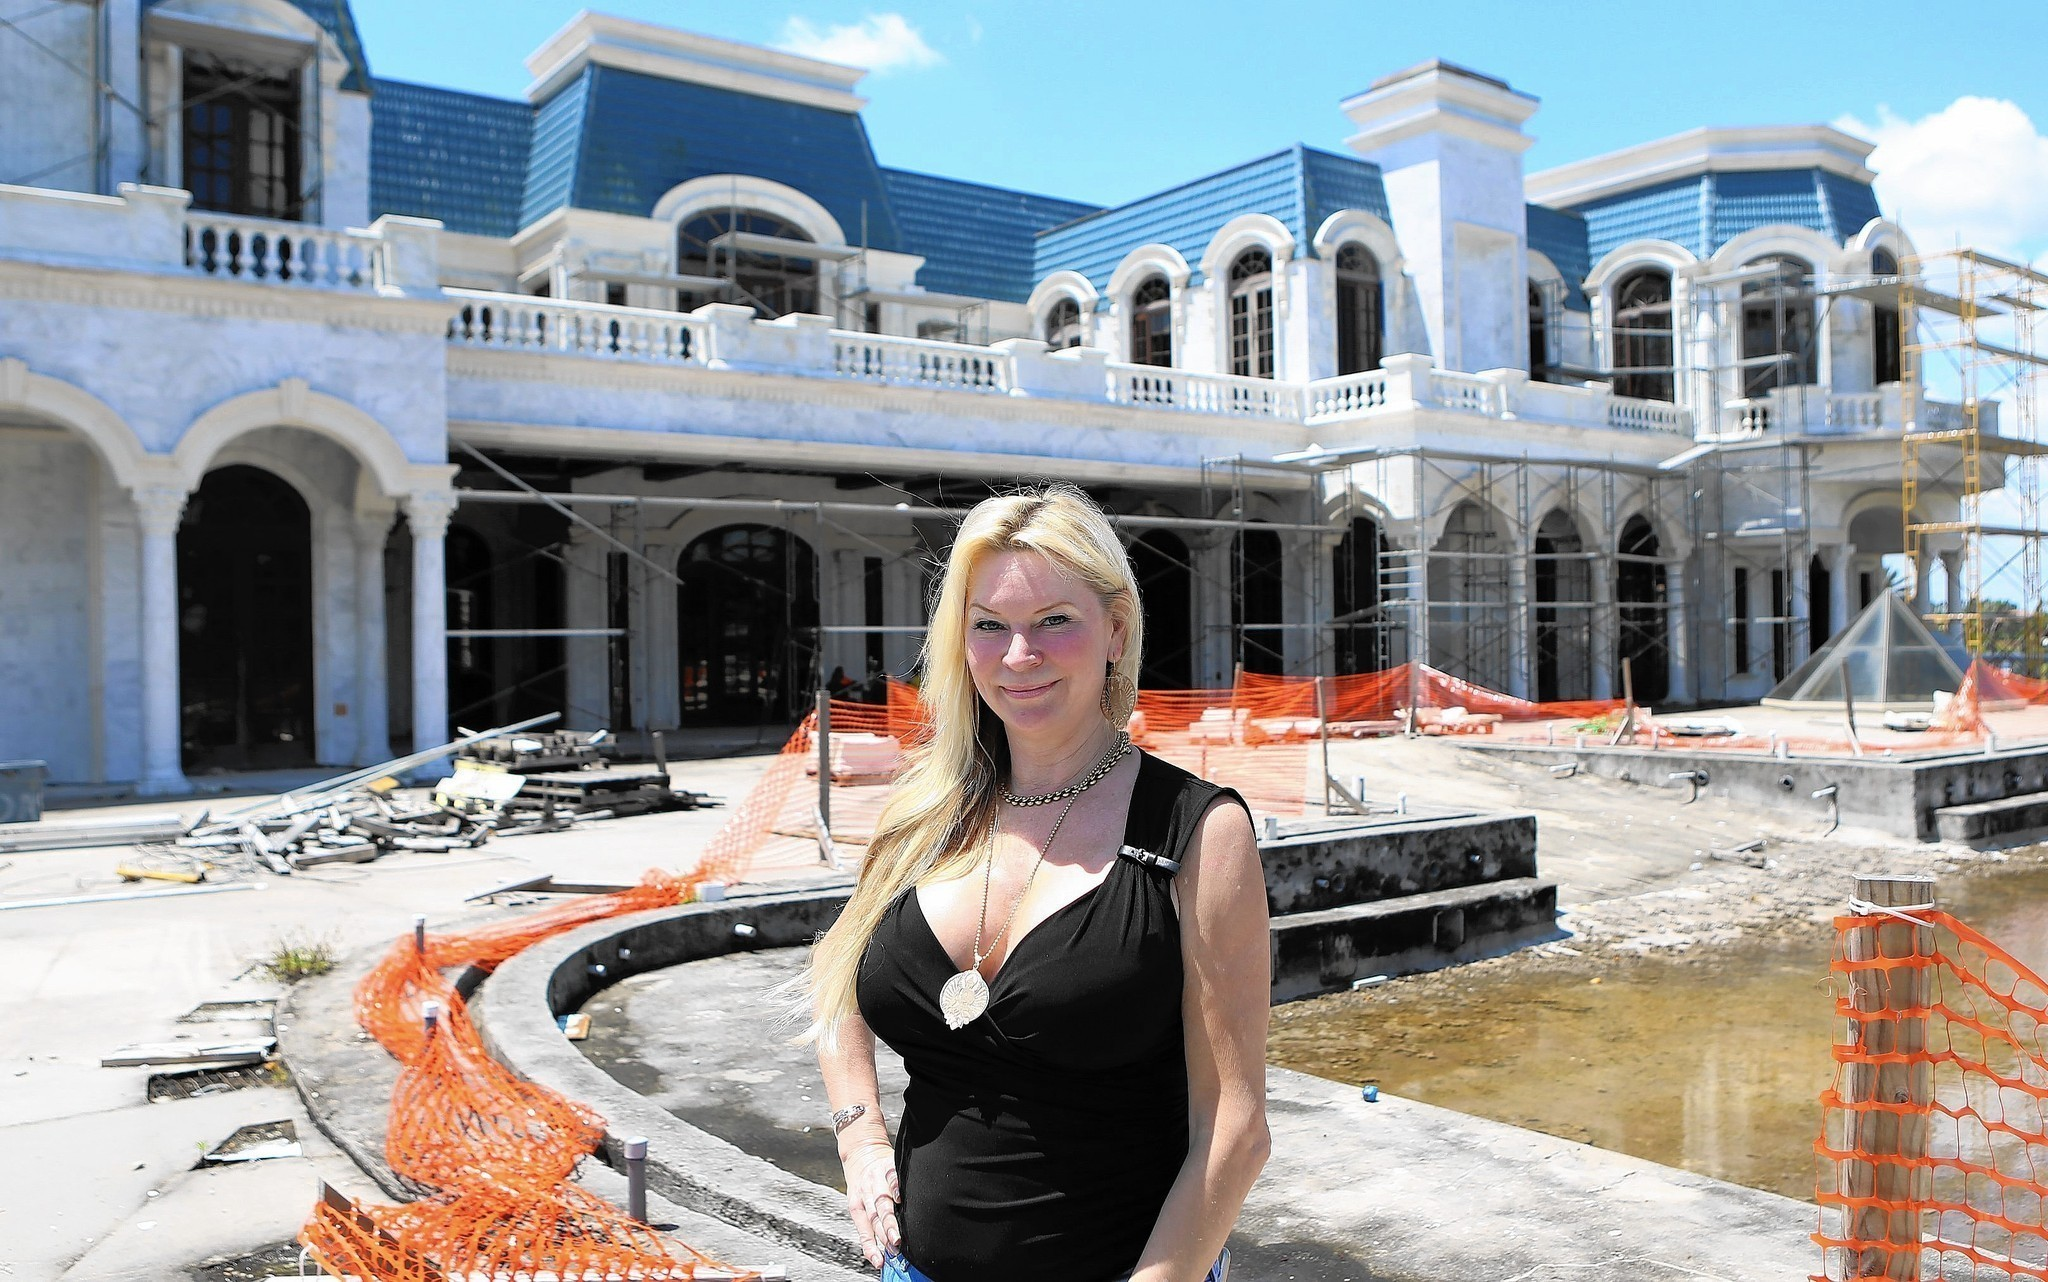 Unfinished Mansion Other Big Projects Await Long Road To Completion